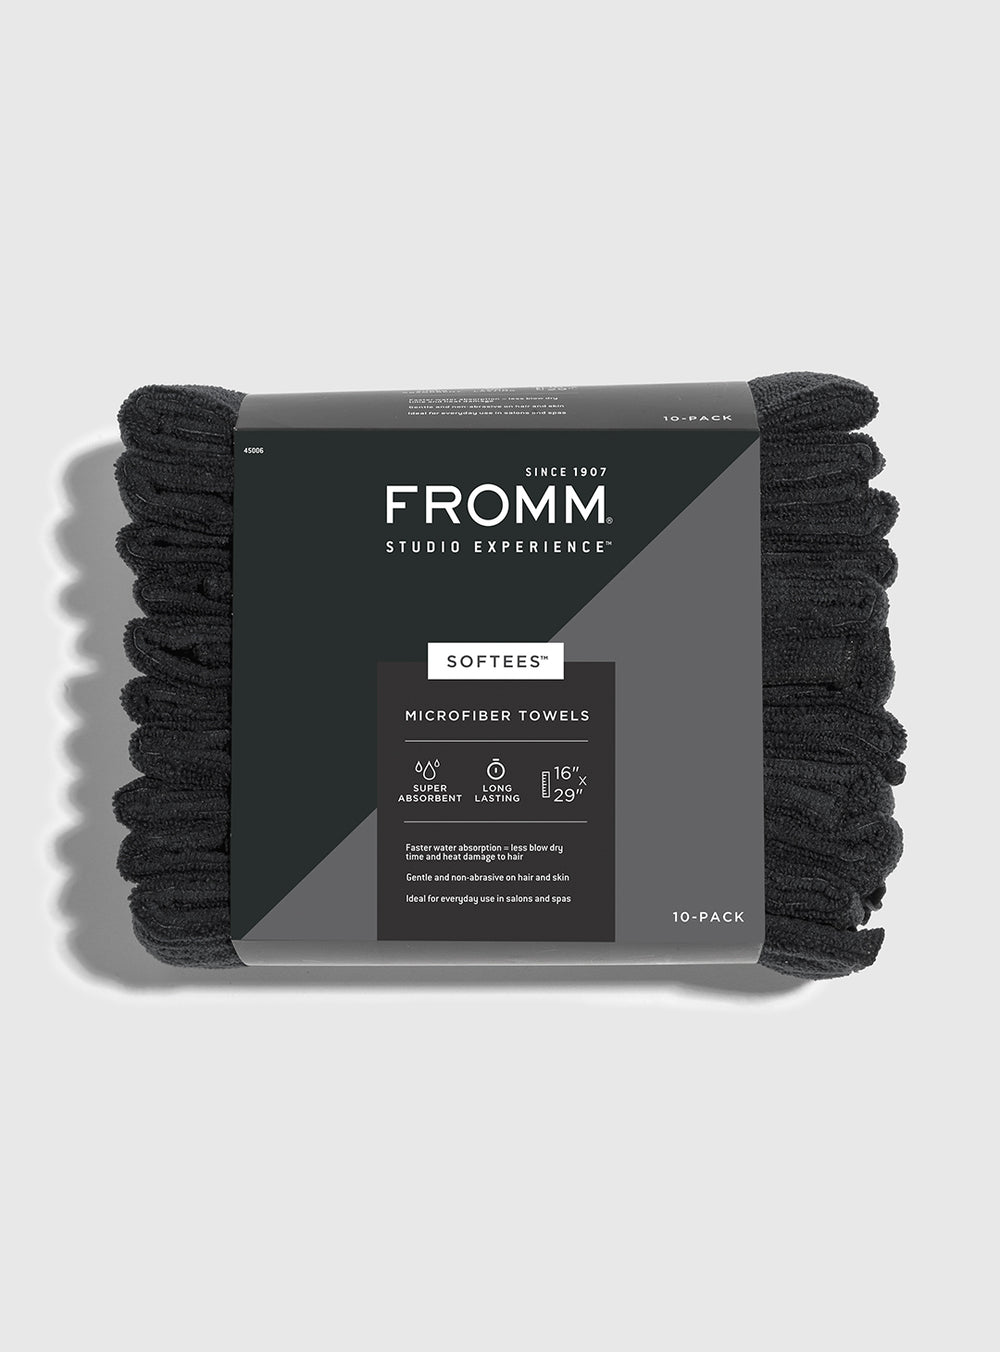 Fromm Pro Professional Salon 10 Pack of Softees Microfiber Black Towels